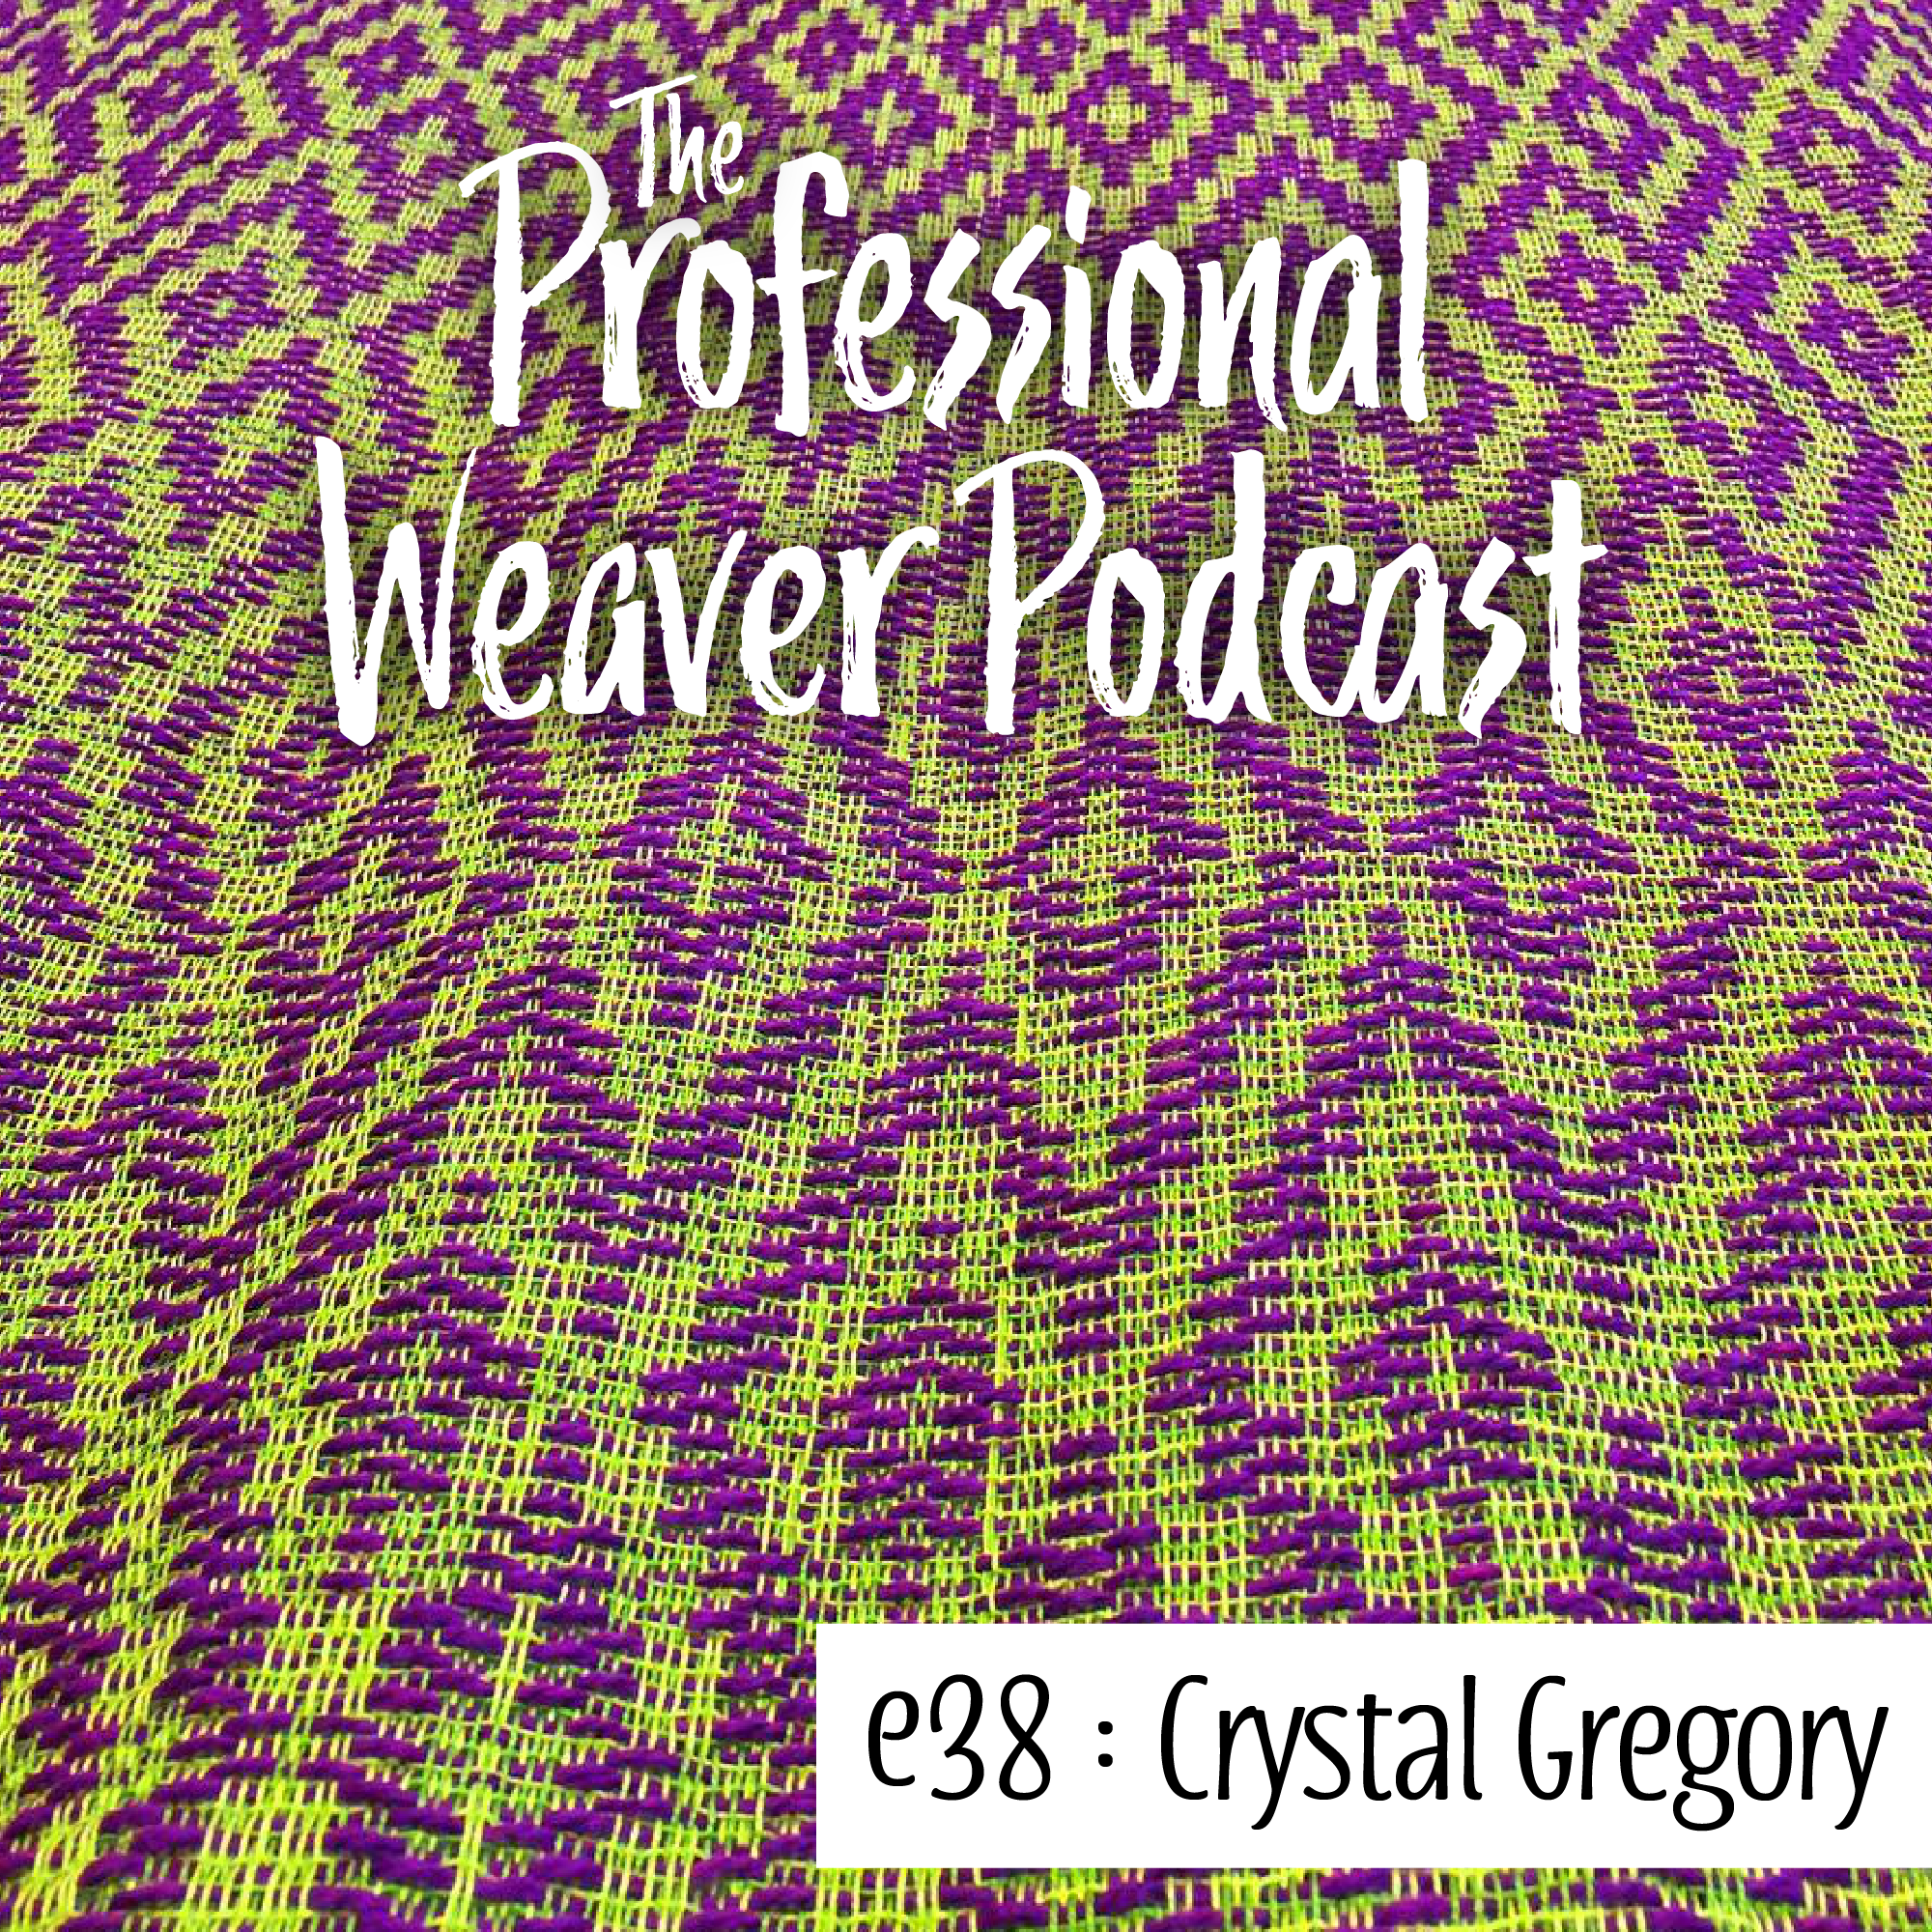 S2E8 : Crystal Gregory on the different ways of learning and teaching weavings, how much there is still left to learn, and creating artwork using woven fabric